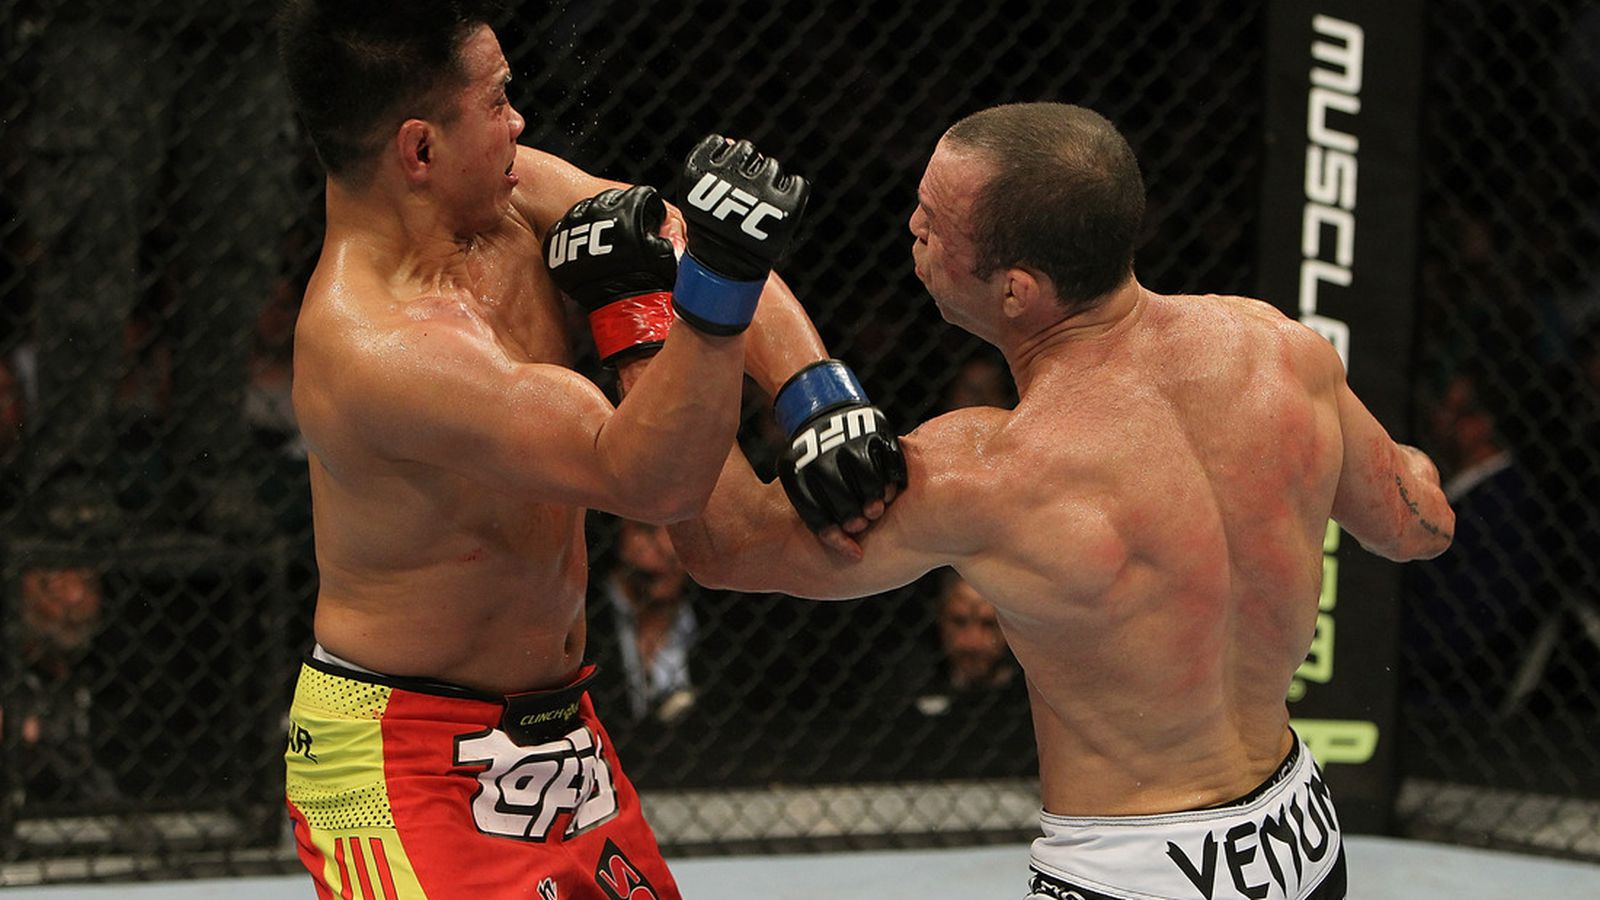 Ufc 139 Results Recap Wanderlei Silva Vs Cung Le Fight Review And